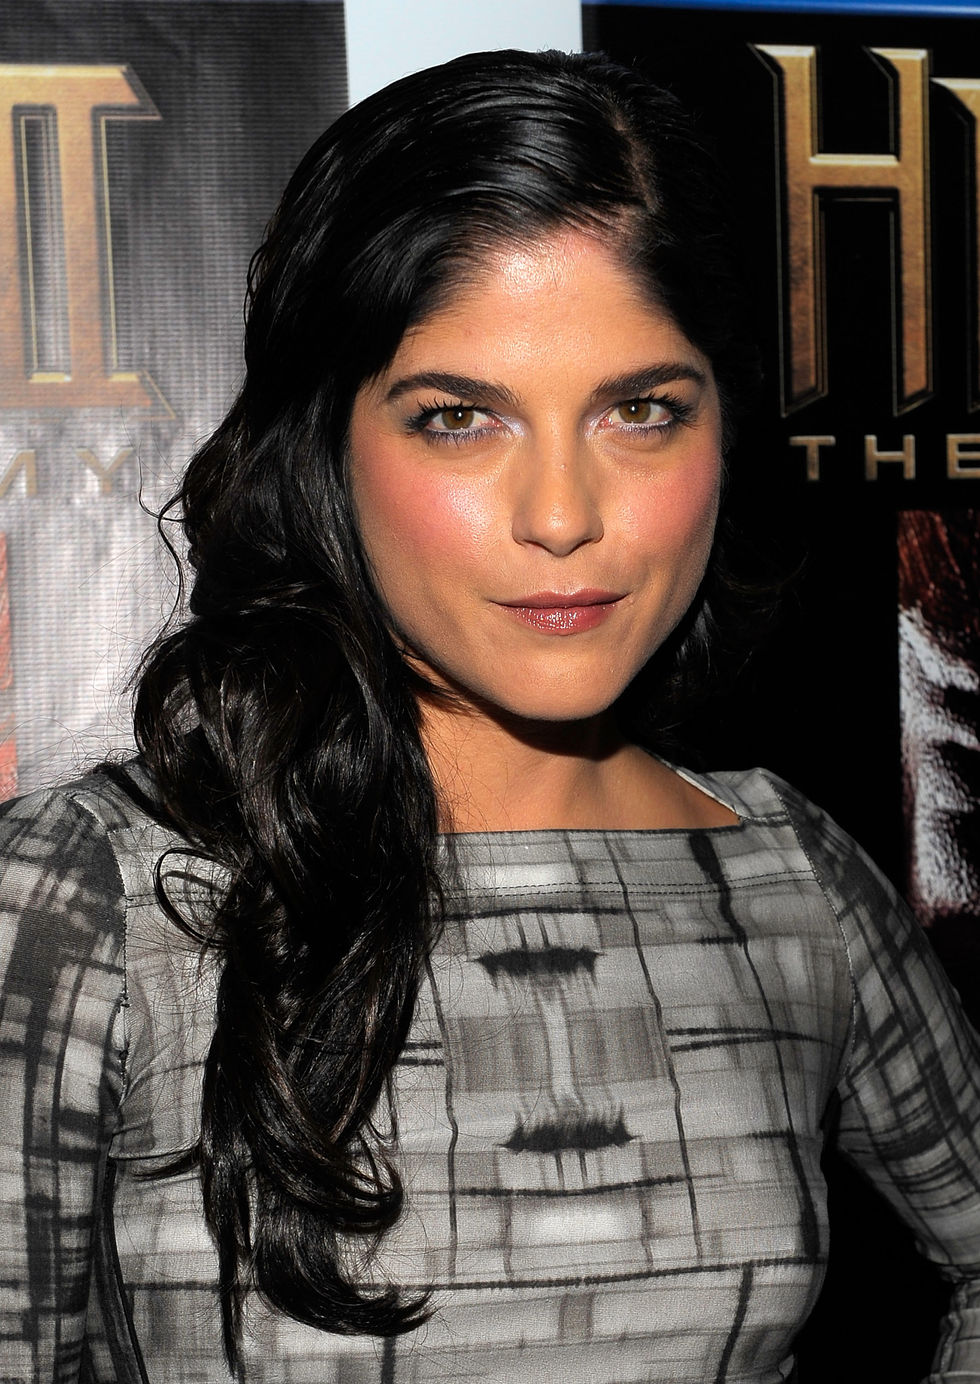 selma-blair-hellboy-ii-the-golden-army-dvd-and-blu-ray-release-party-in-hollywood-01